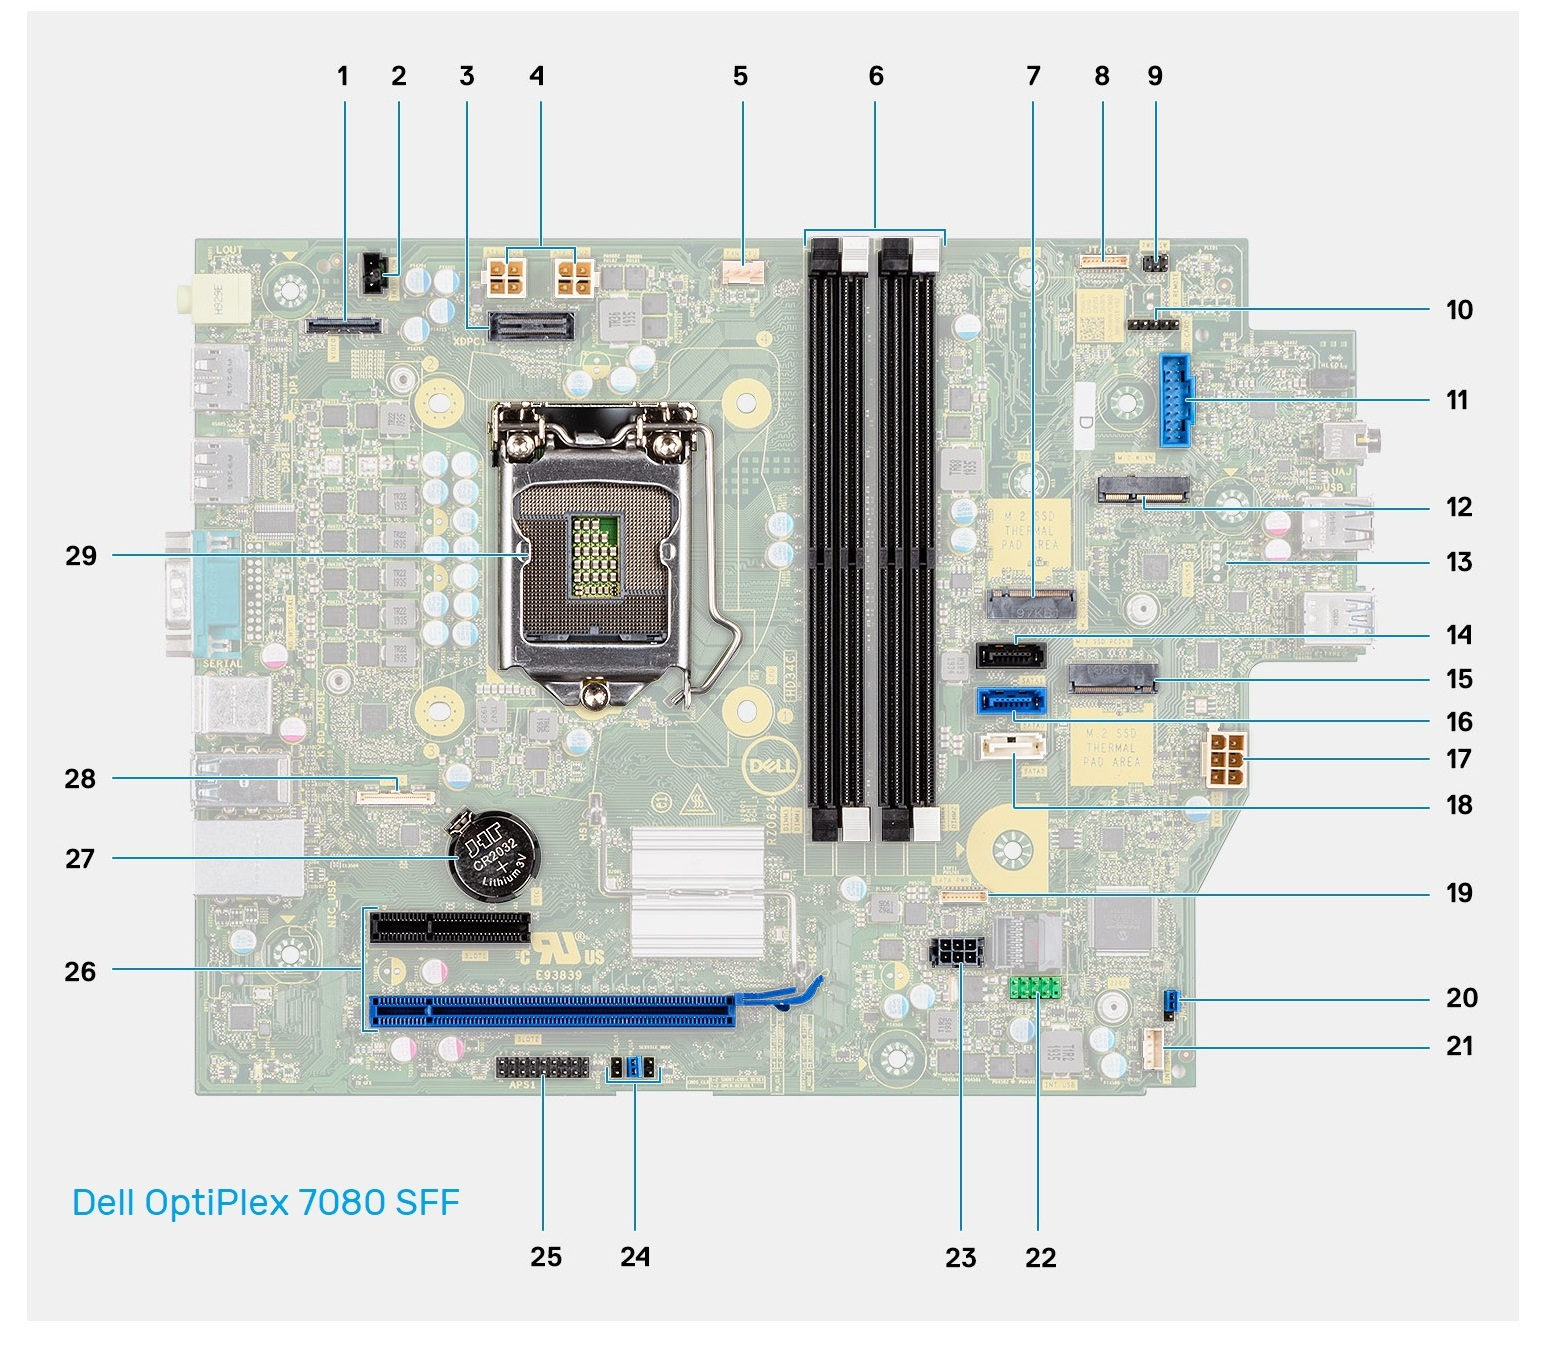 Dell_OptiPlex_7080_SFF_motherboard.jpg motherboard layout